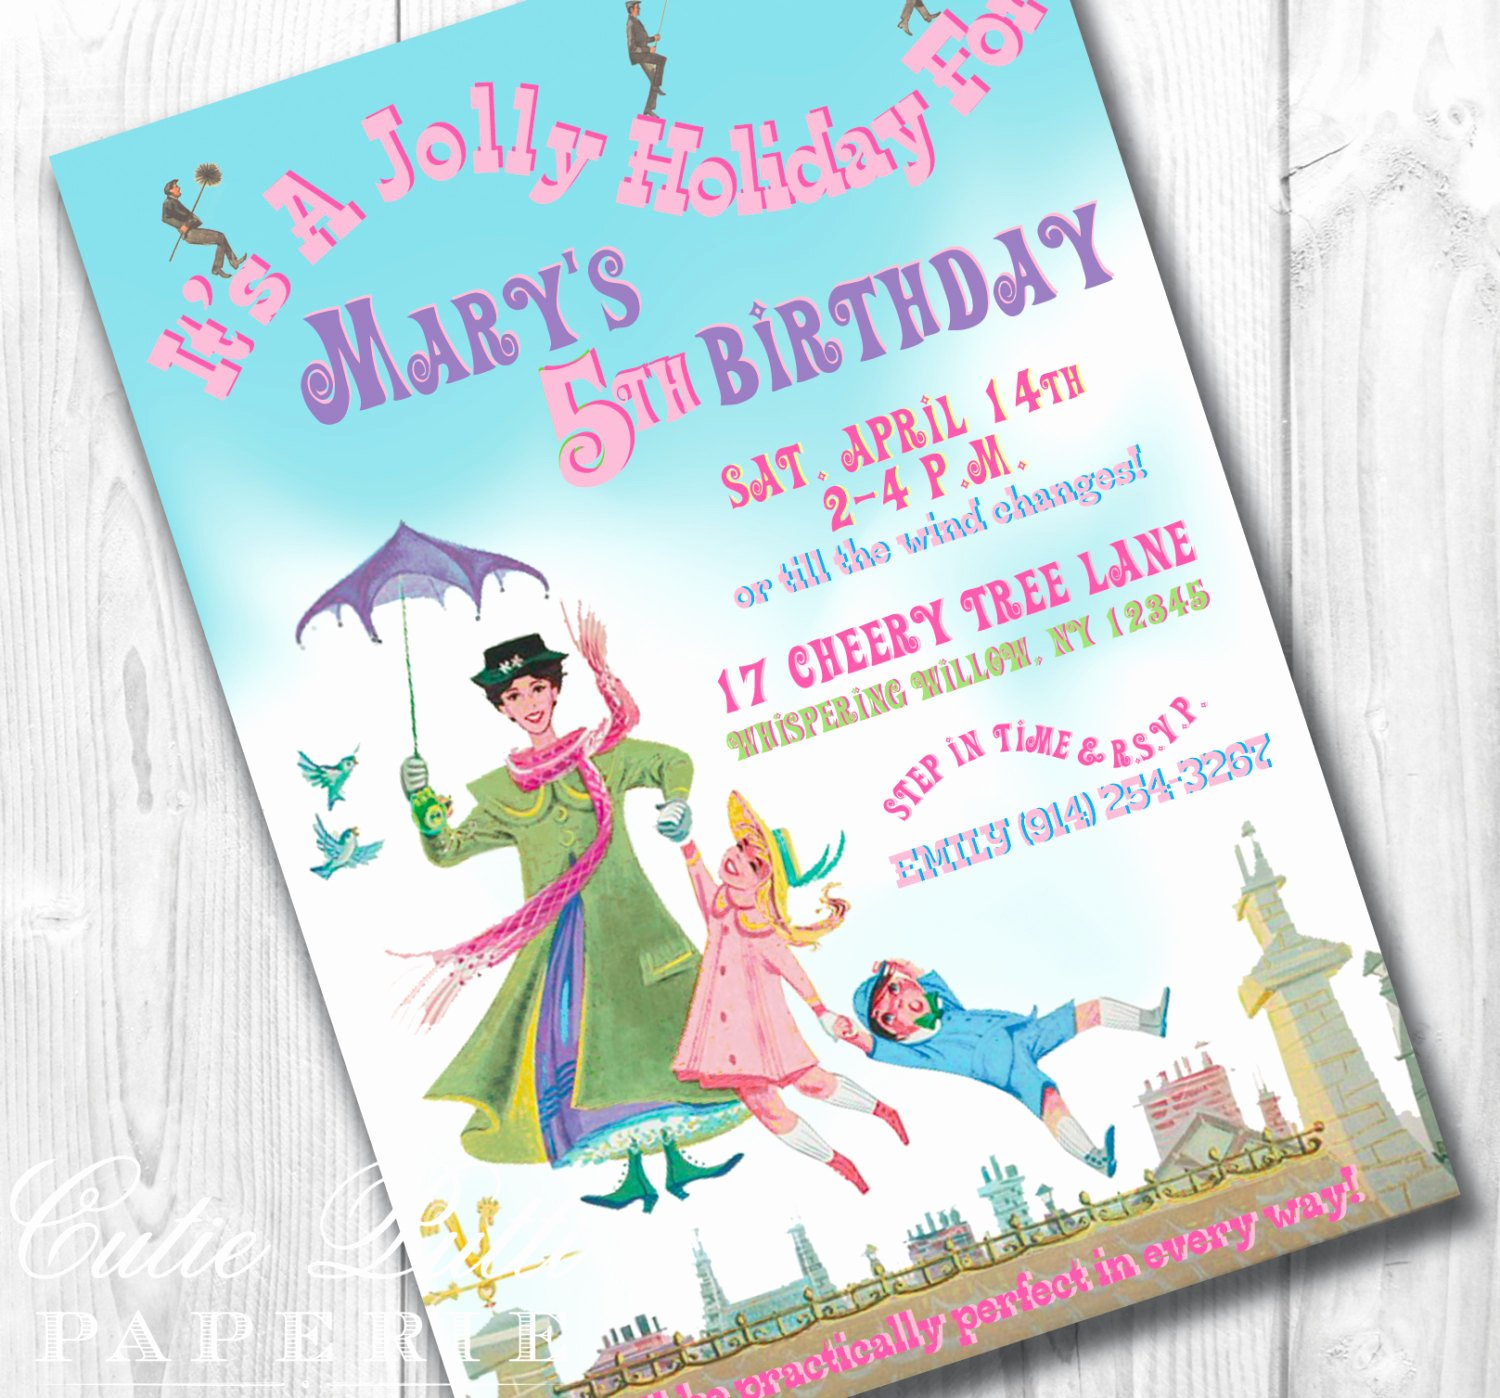 Printable Birthday Party Invitations New Mary Poppins Party Invitations Printable Custom Invitations